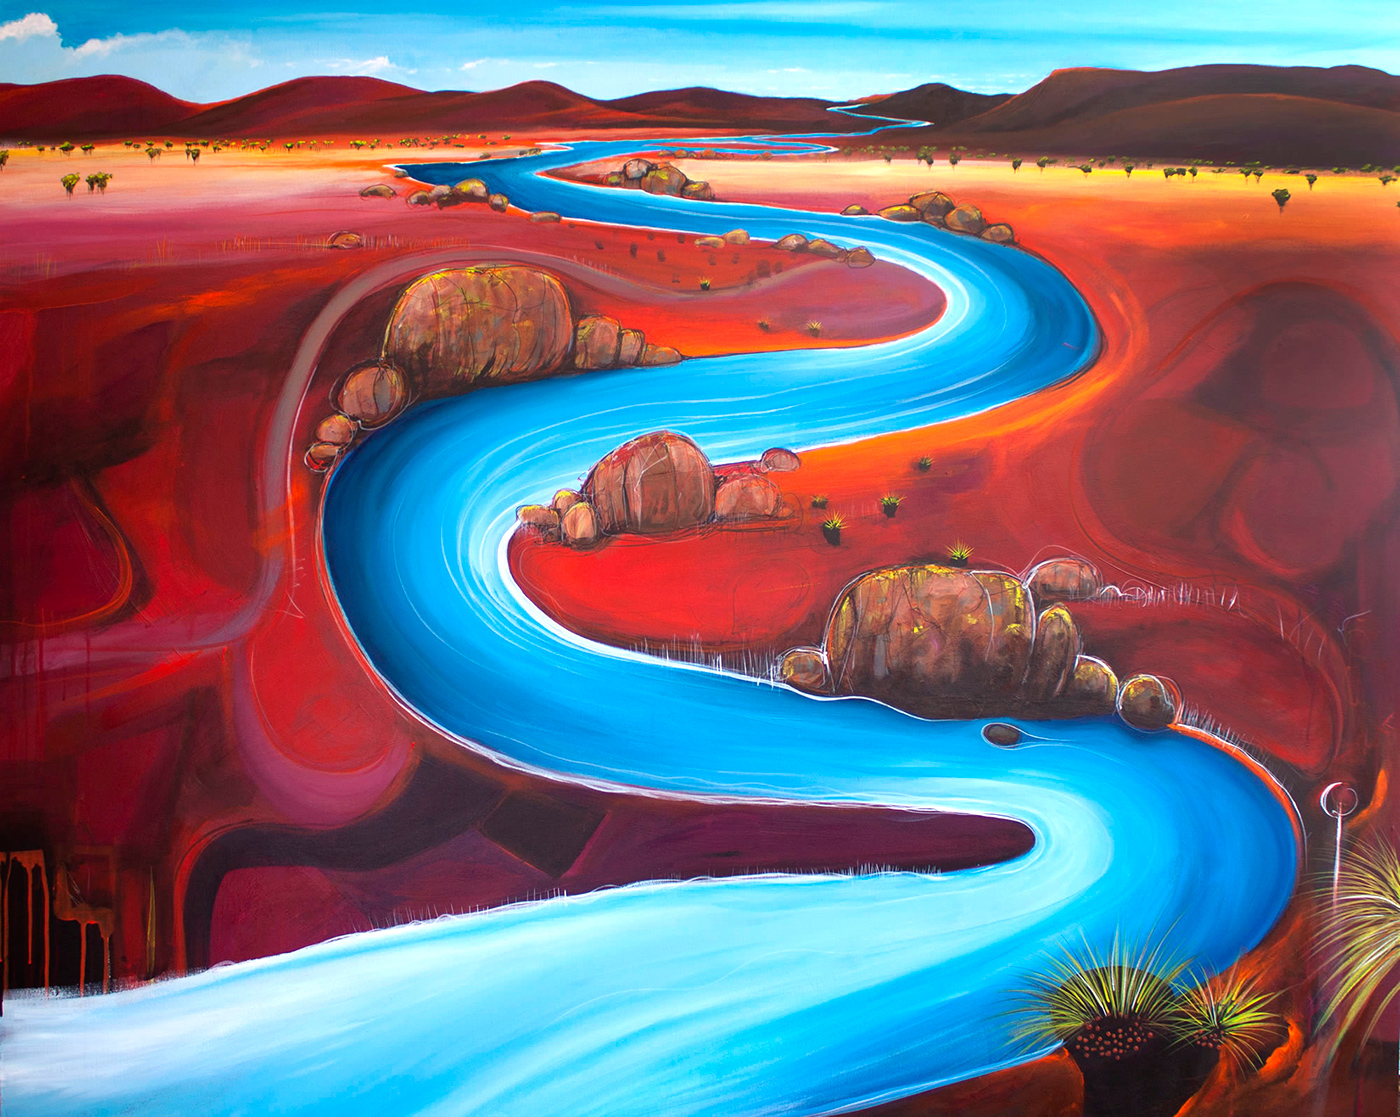 Tania Chanter - 'Meandering River Plain'